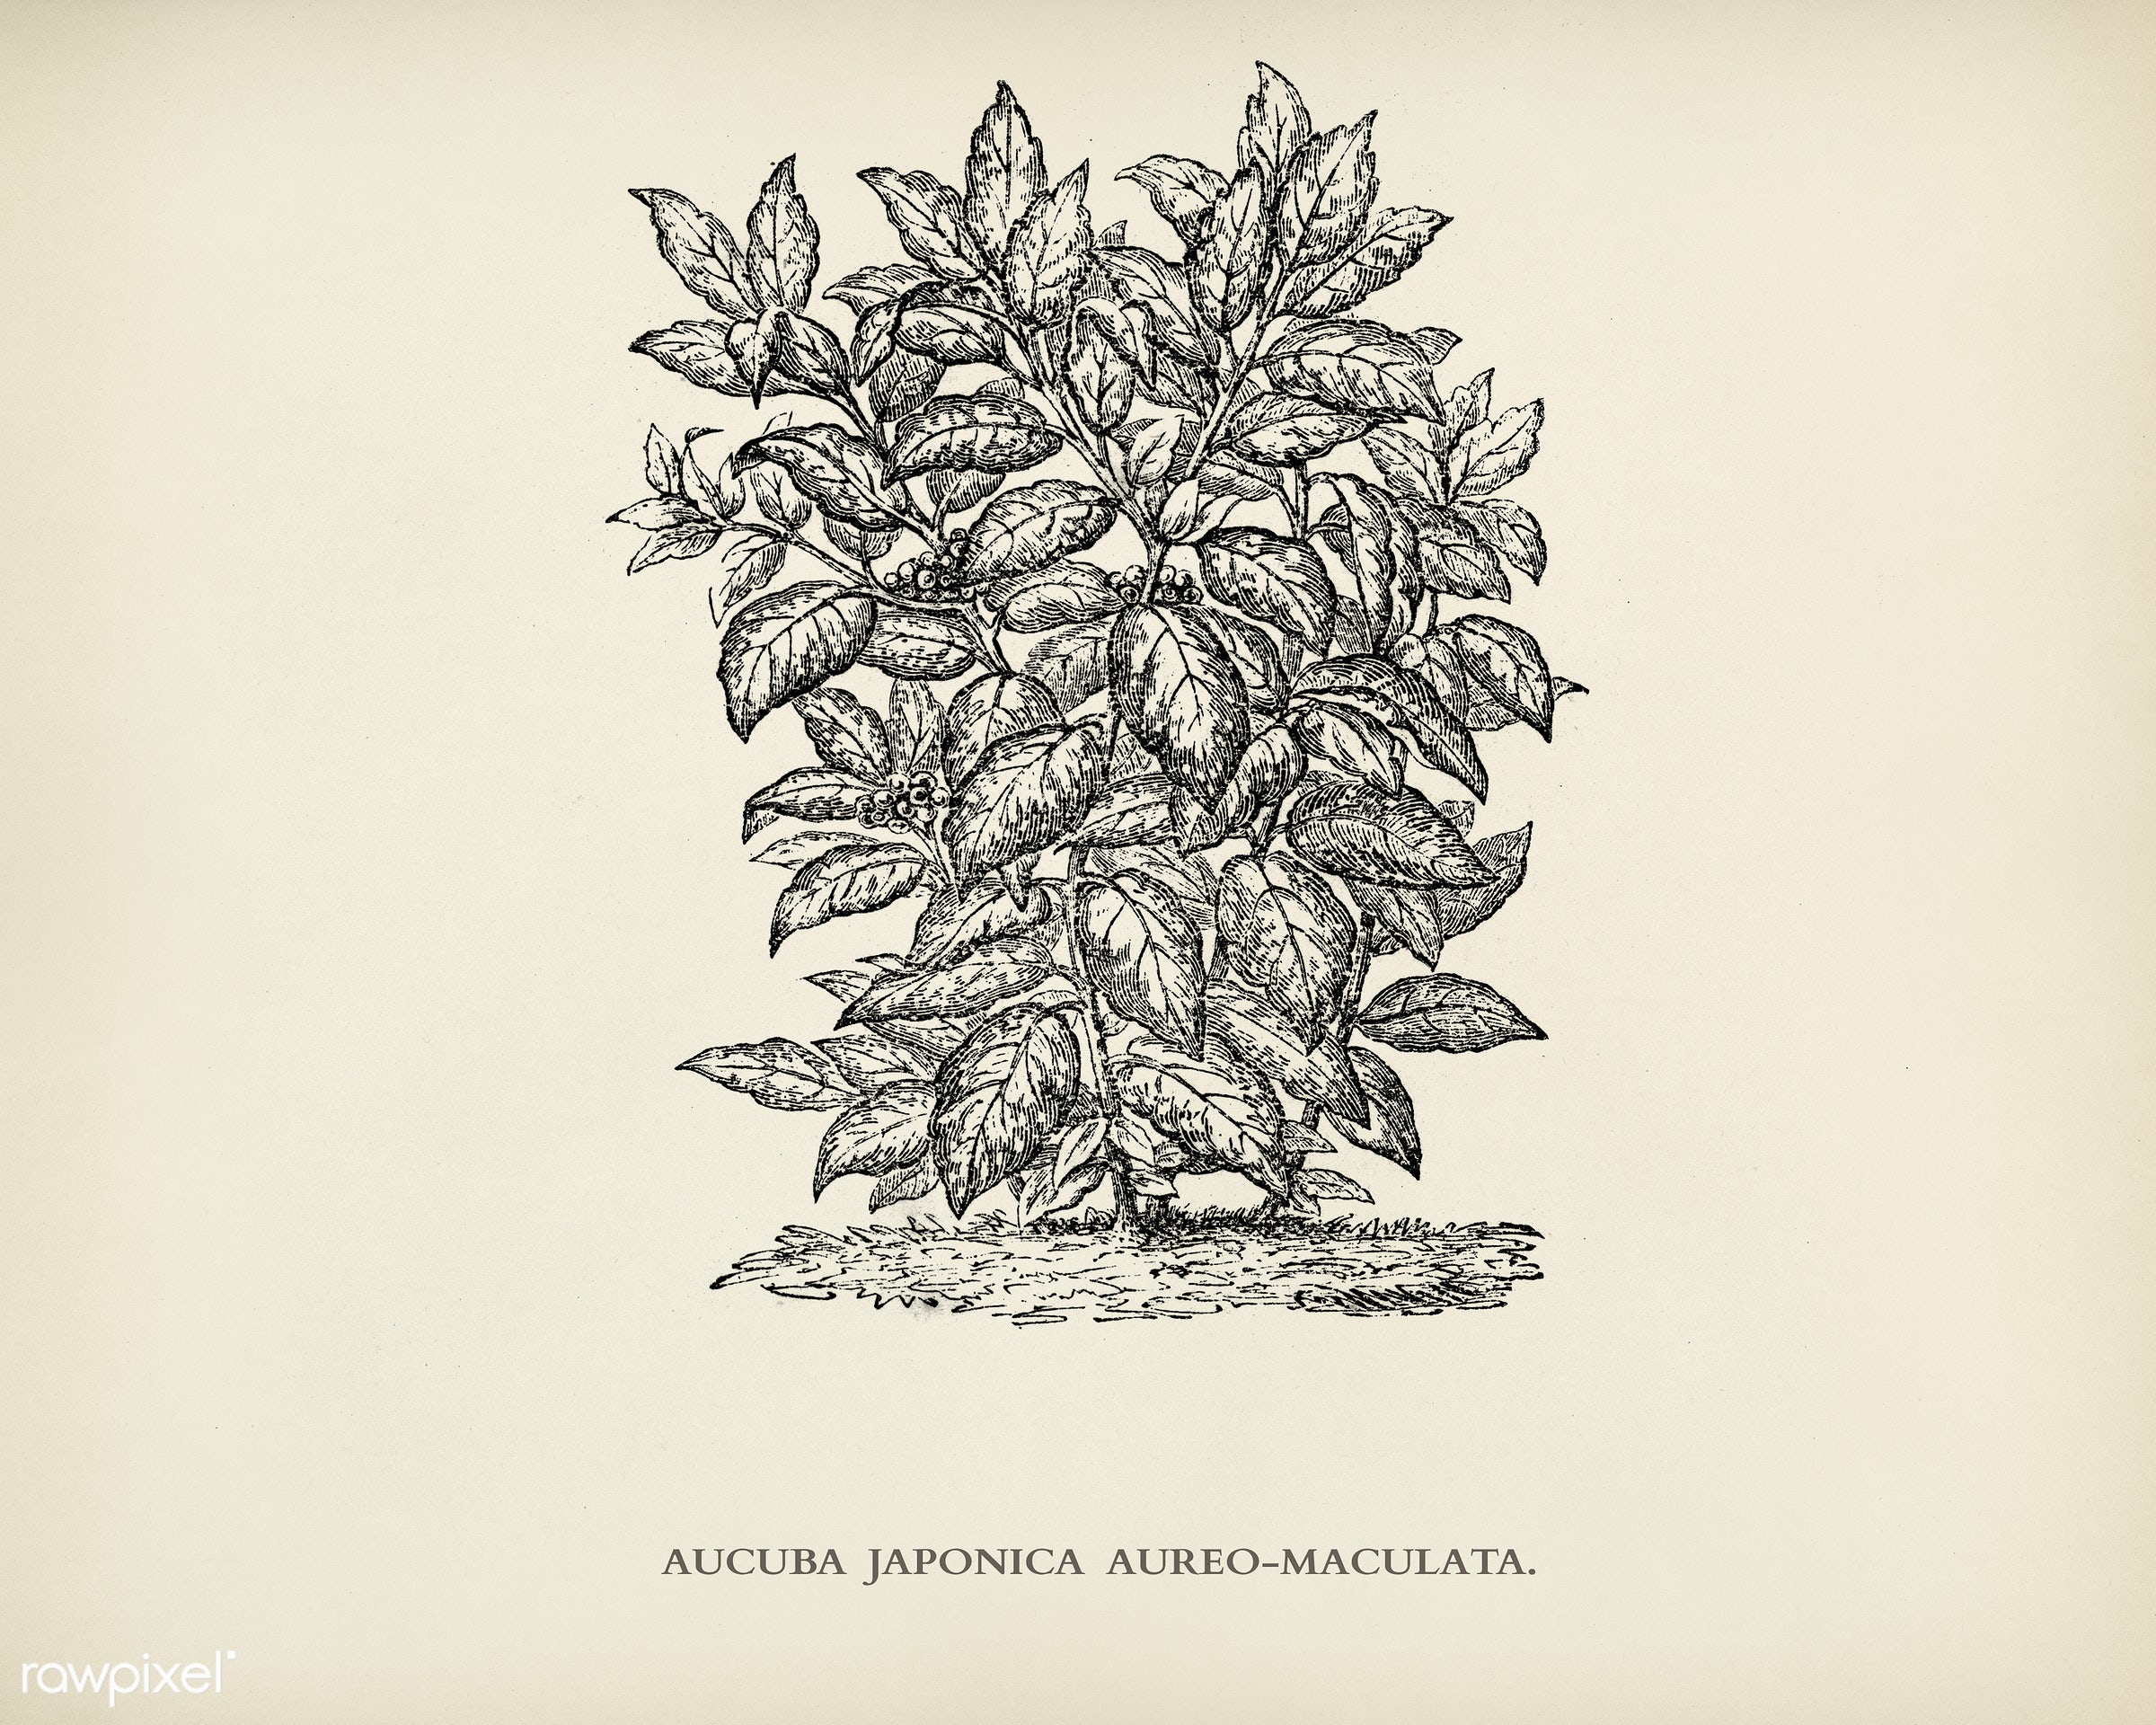 Aucuba Japonica Aureo Maculata engraved by Benjamin Fawcett (1808-1893) for Shirley Hibberd's (1825-1890) New and Rare...